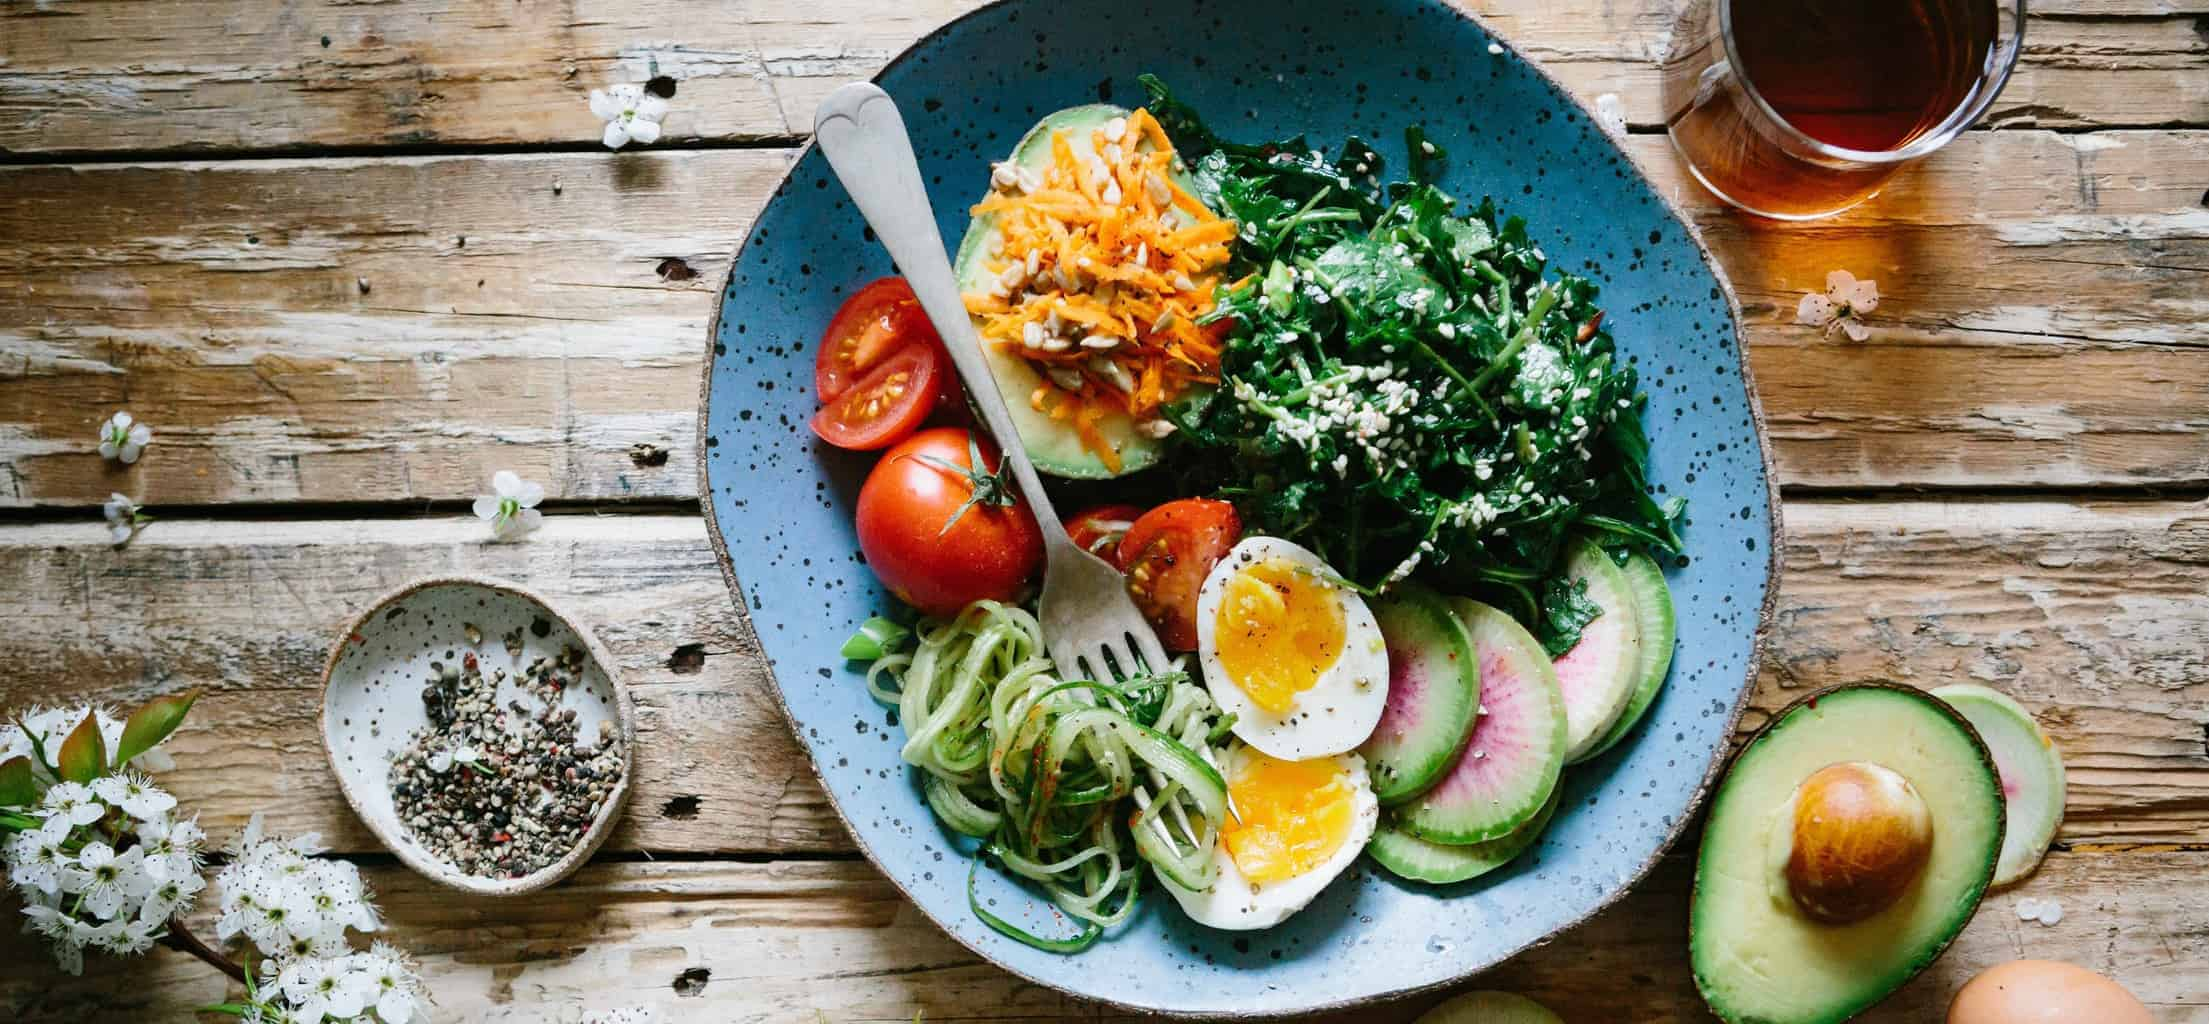 A plate of healthy delicious food.